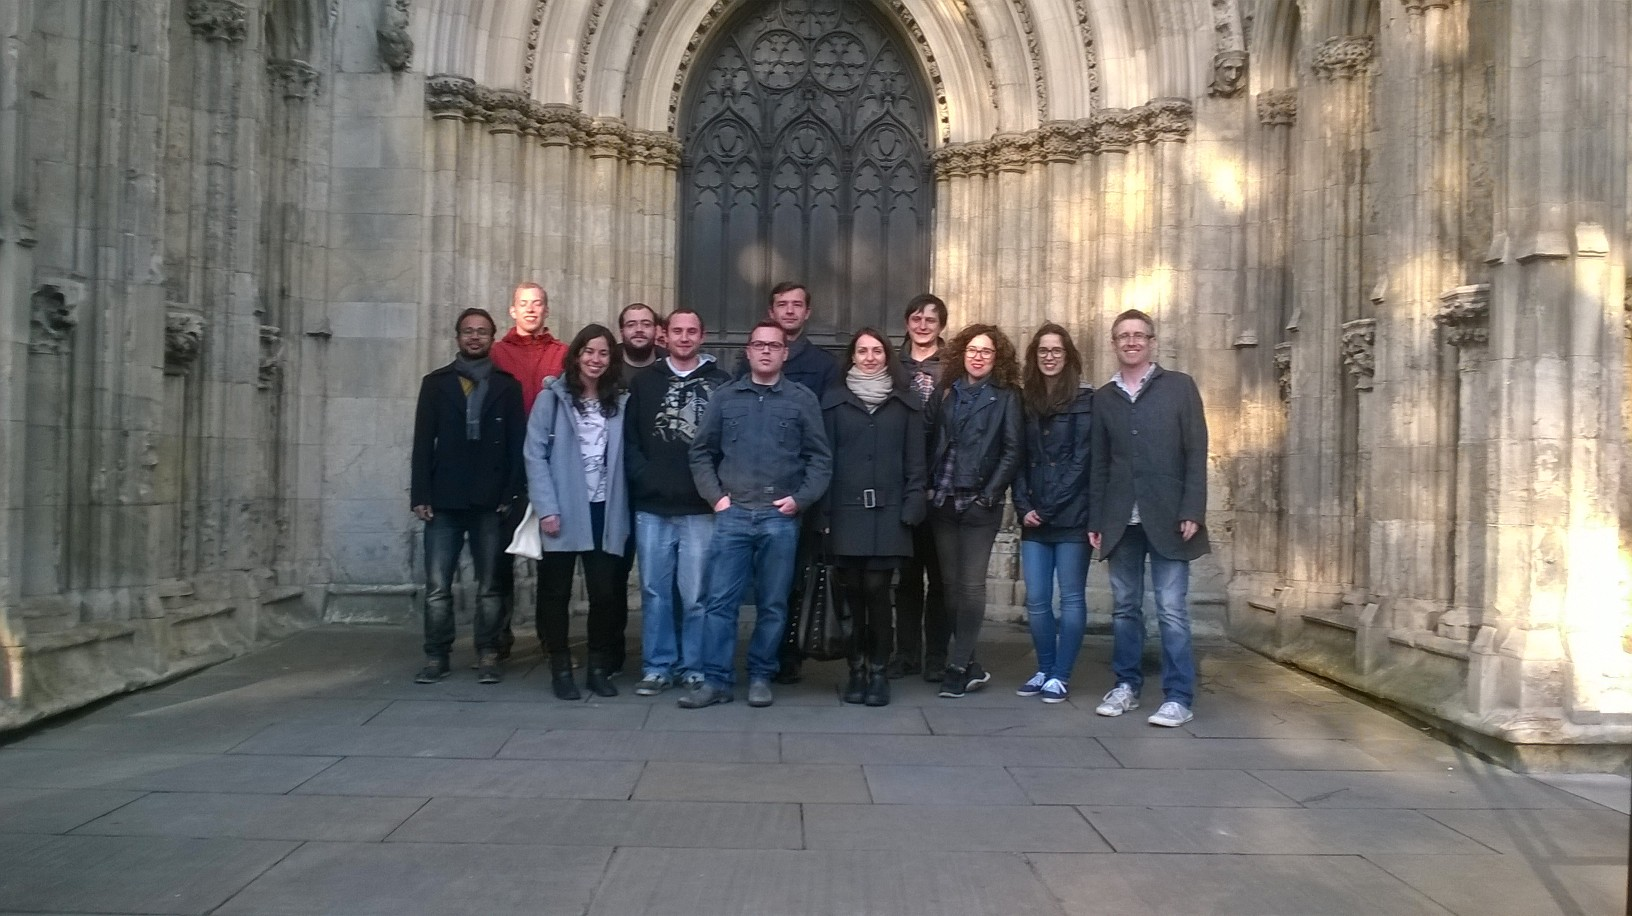 SMARTNET Students at York Cathedral